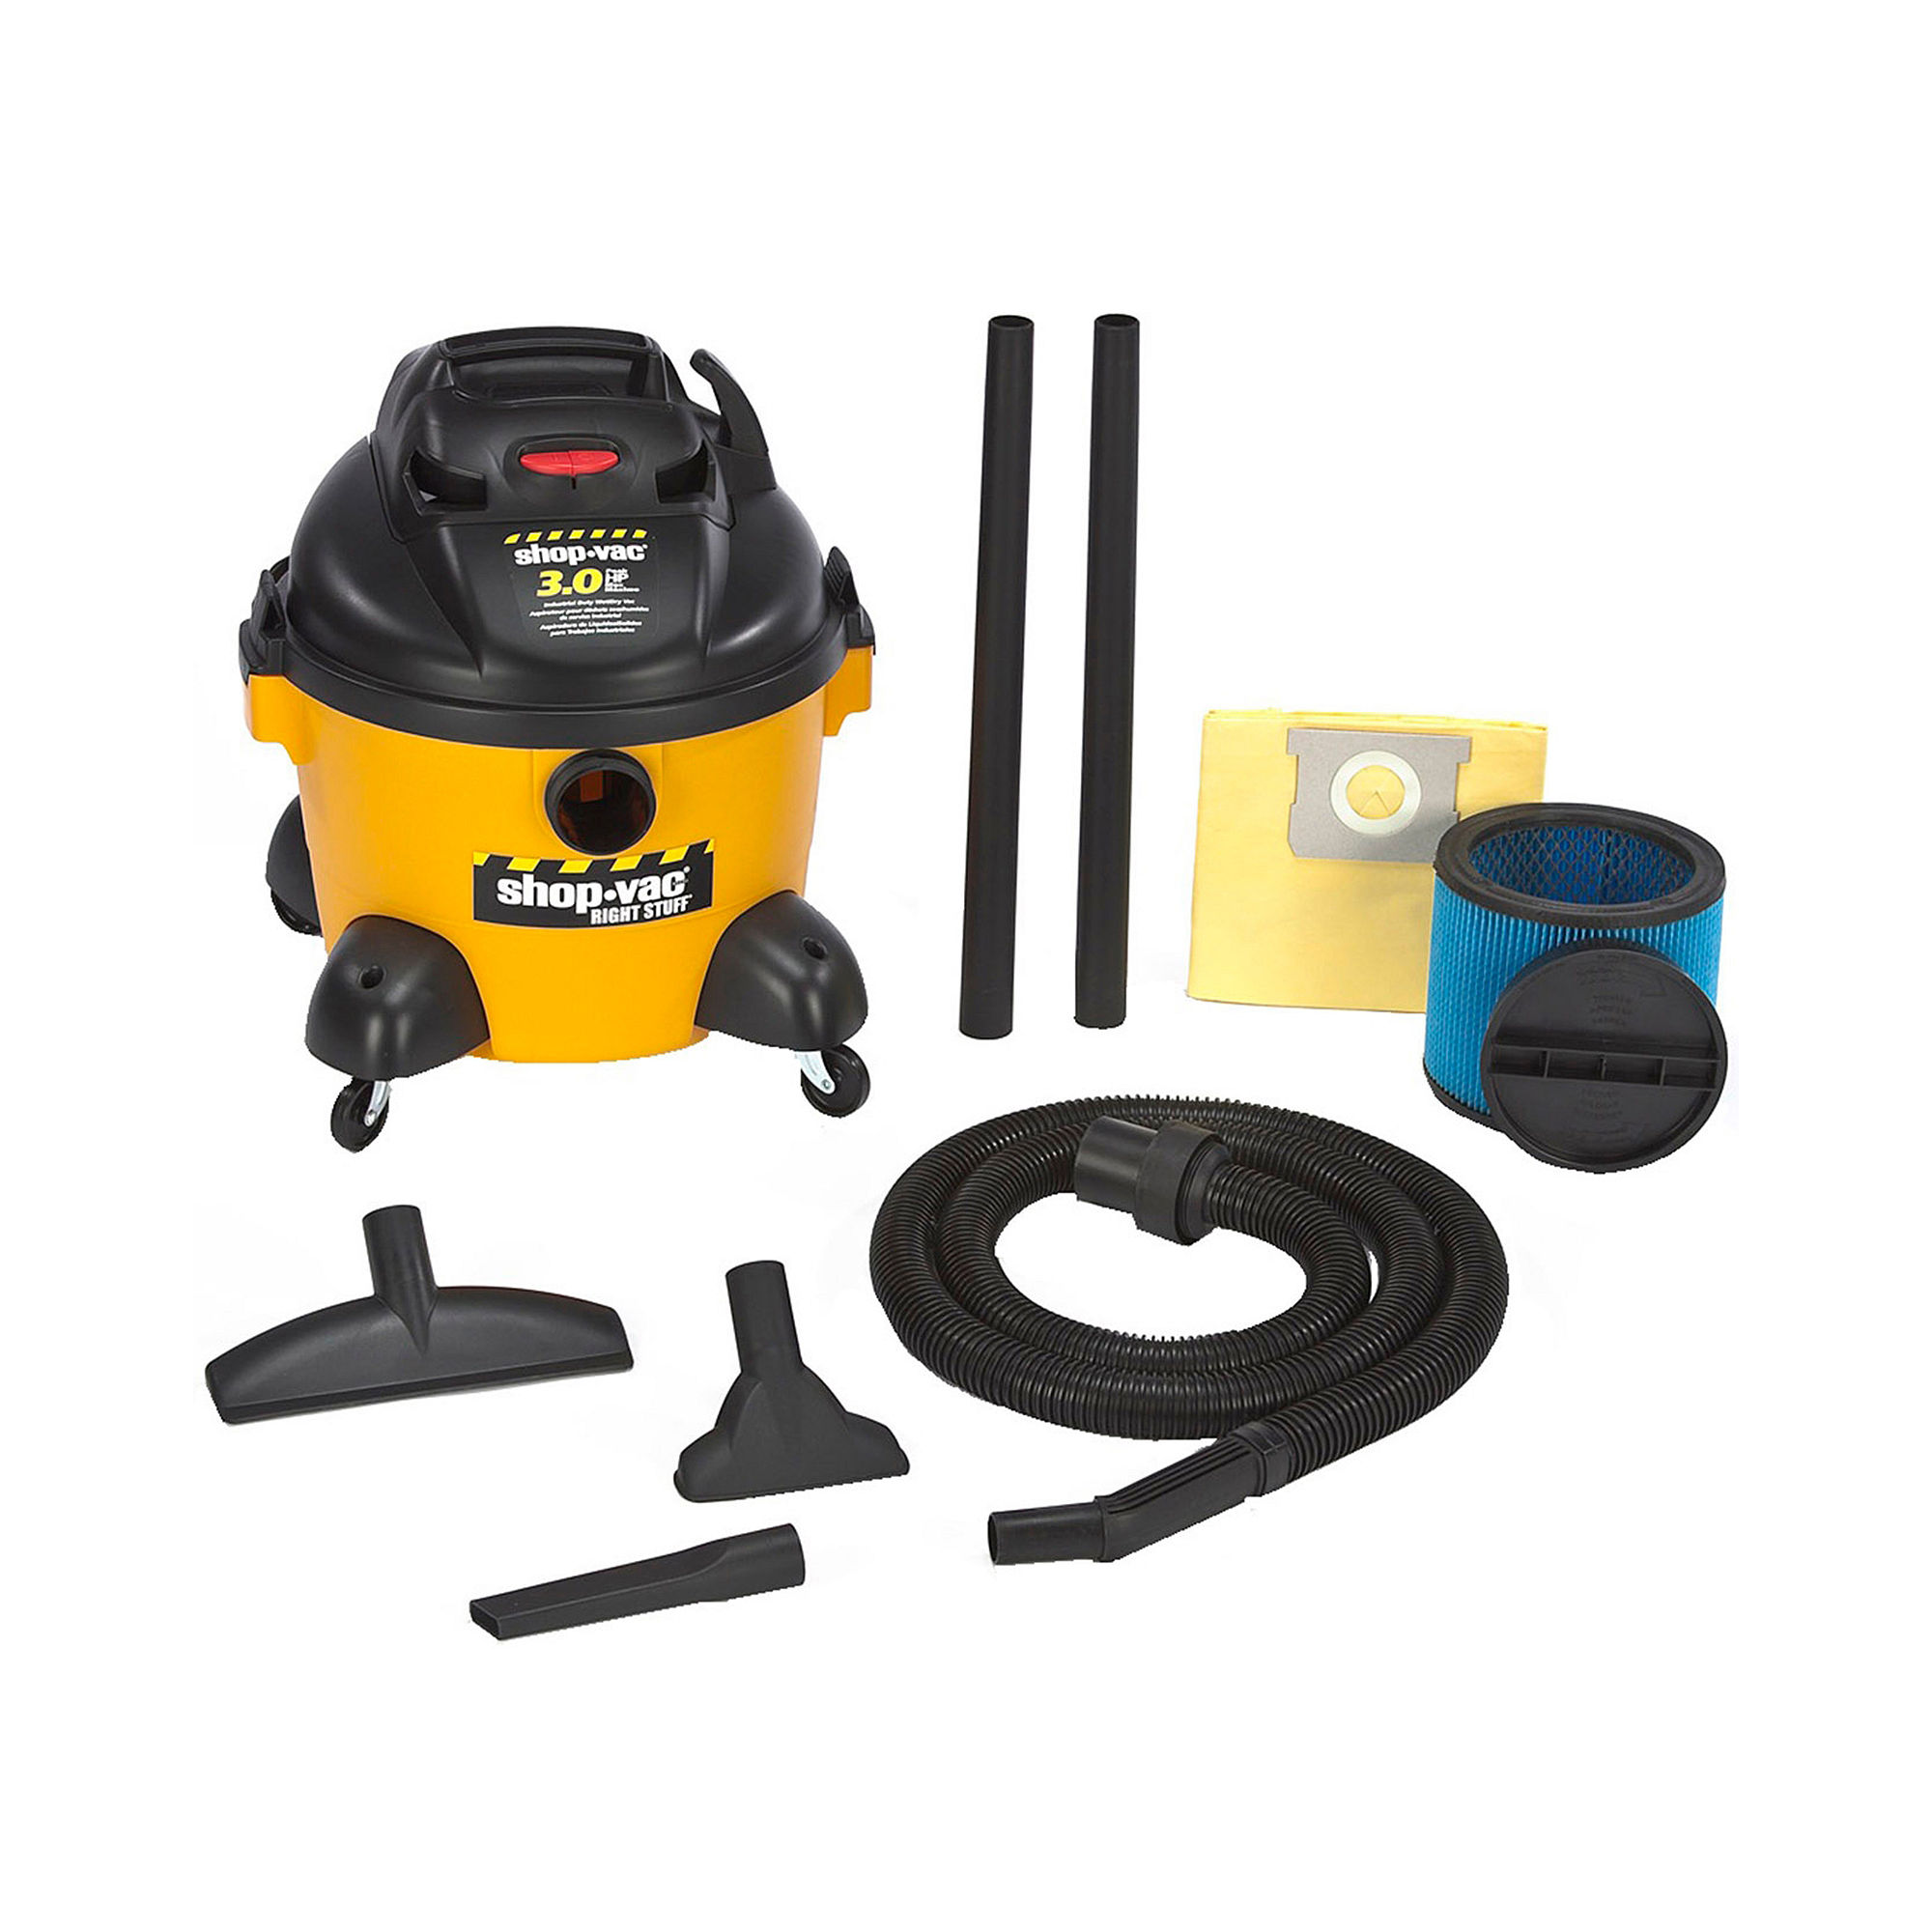 Shop-Vac Right Stuff 6-Gallon Wet/Dry Vacuum Cleaner